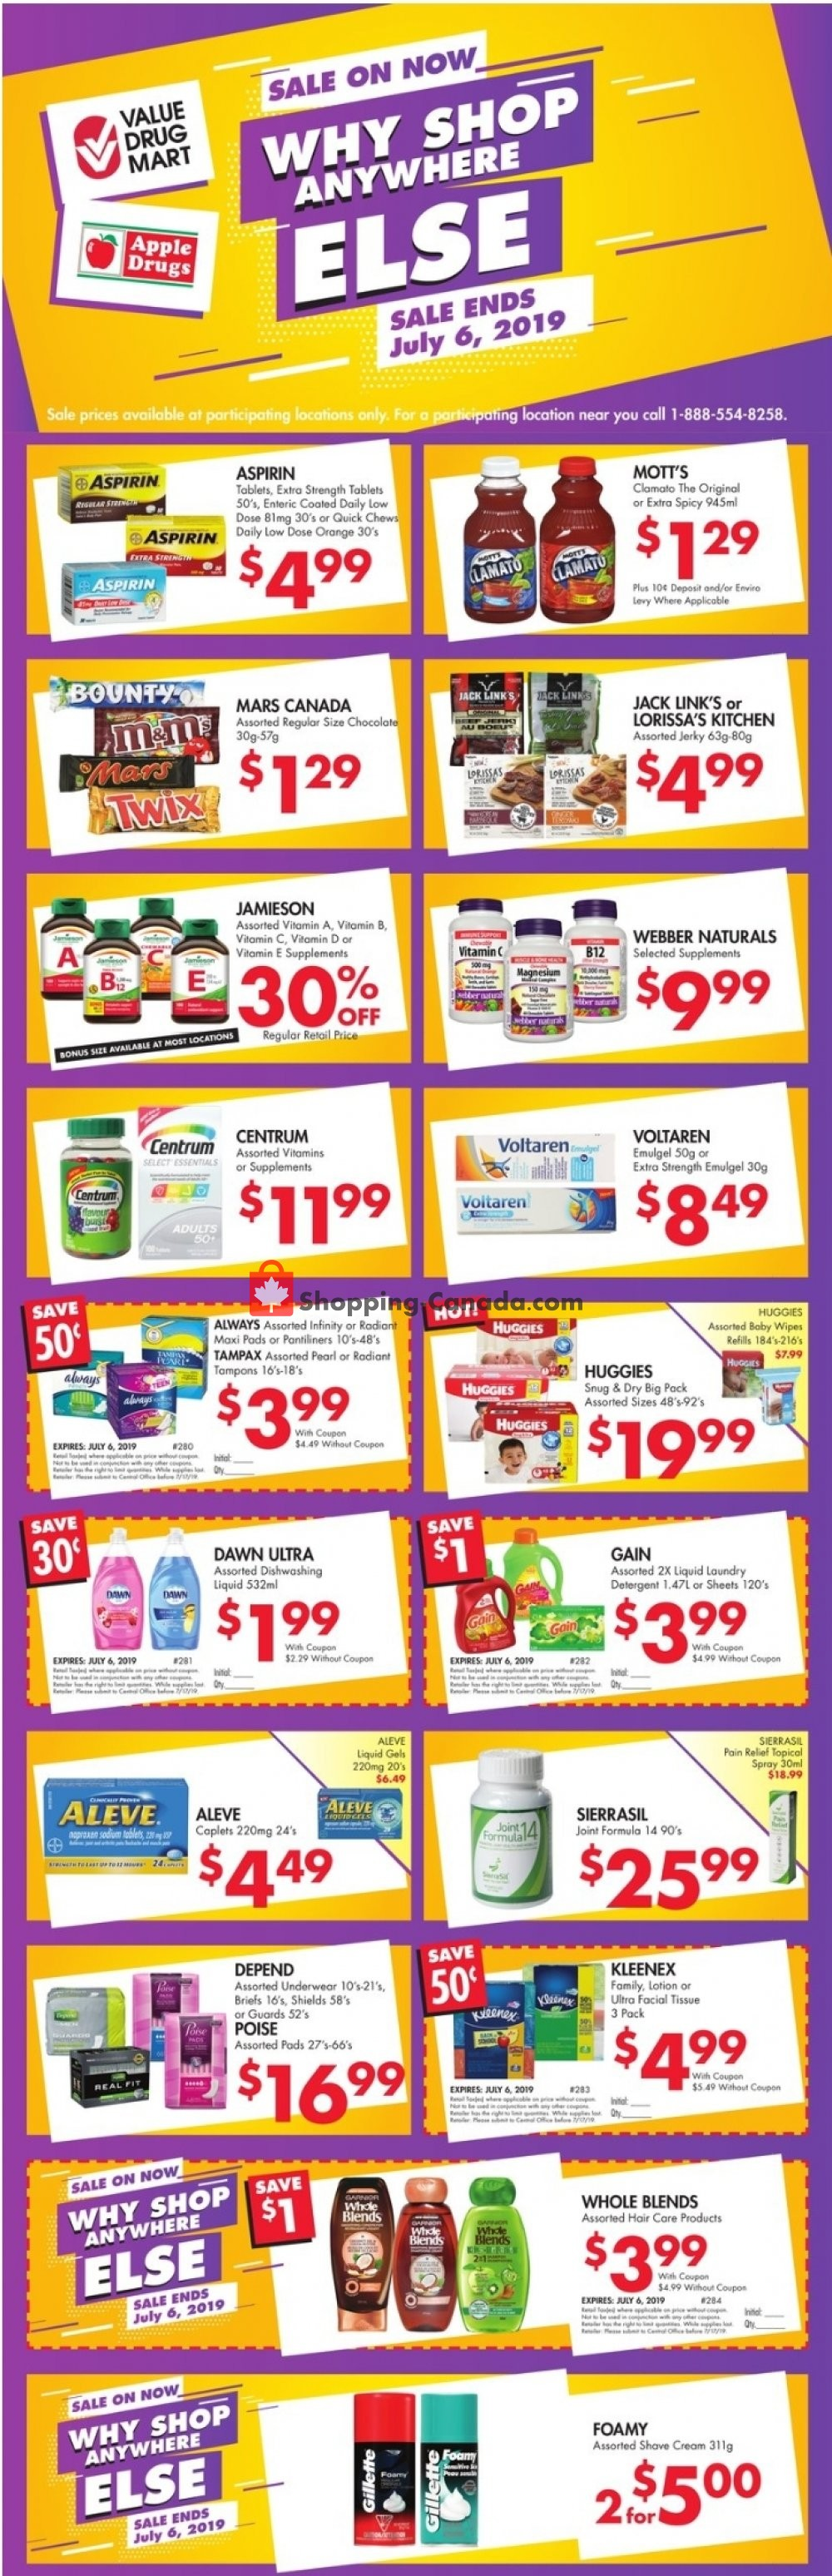 Flyer Apple Drugs Canada - from Sunday June 30, 2019 to Saturday July 6, 2019